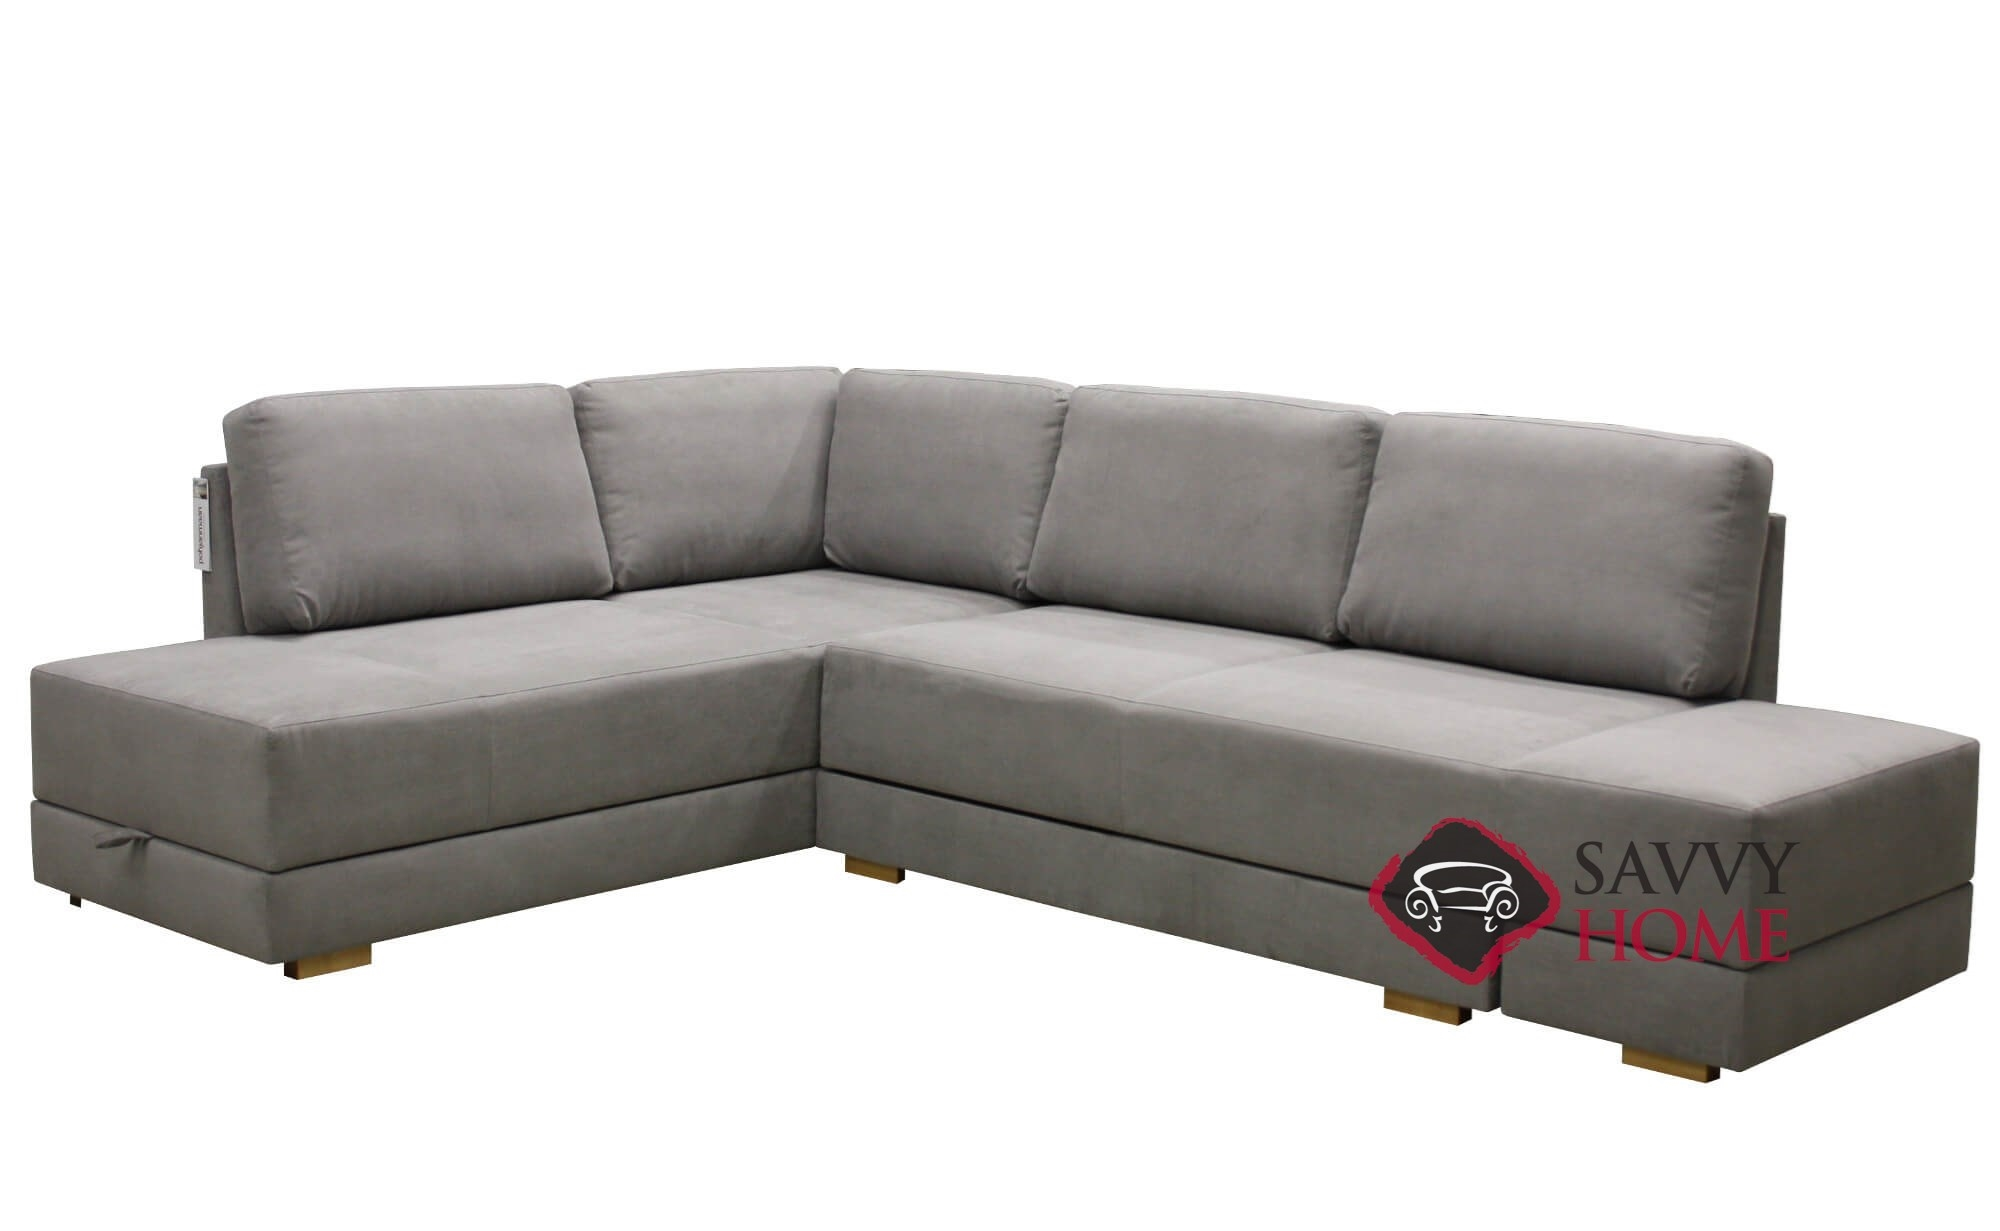 Queen Sofa Bed Brooklyn Sectional Queen Sofa Bed With Storage Option By Luonto